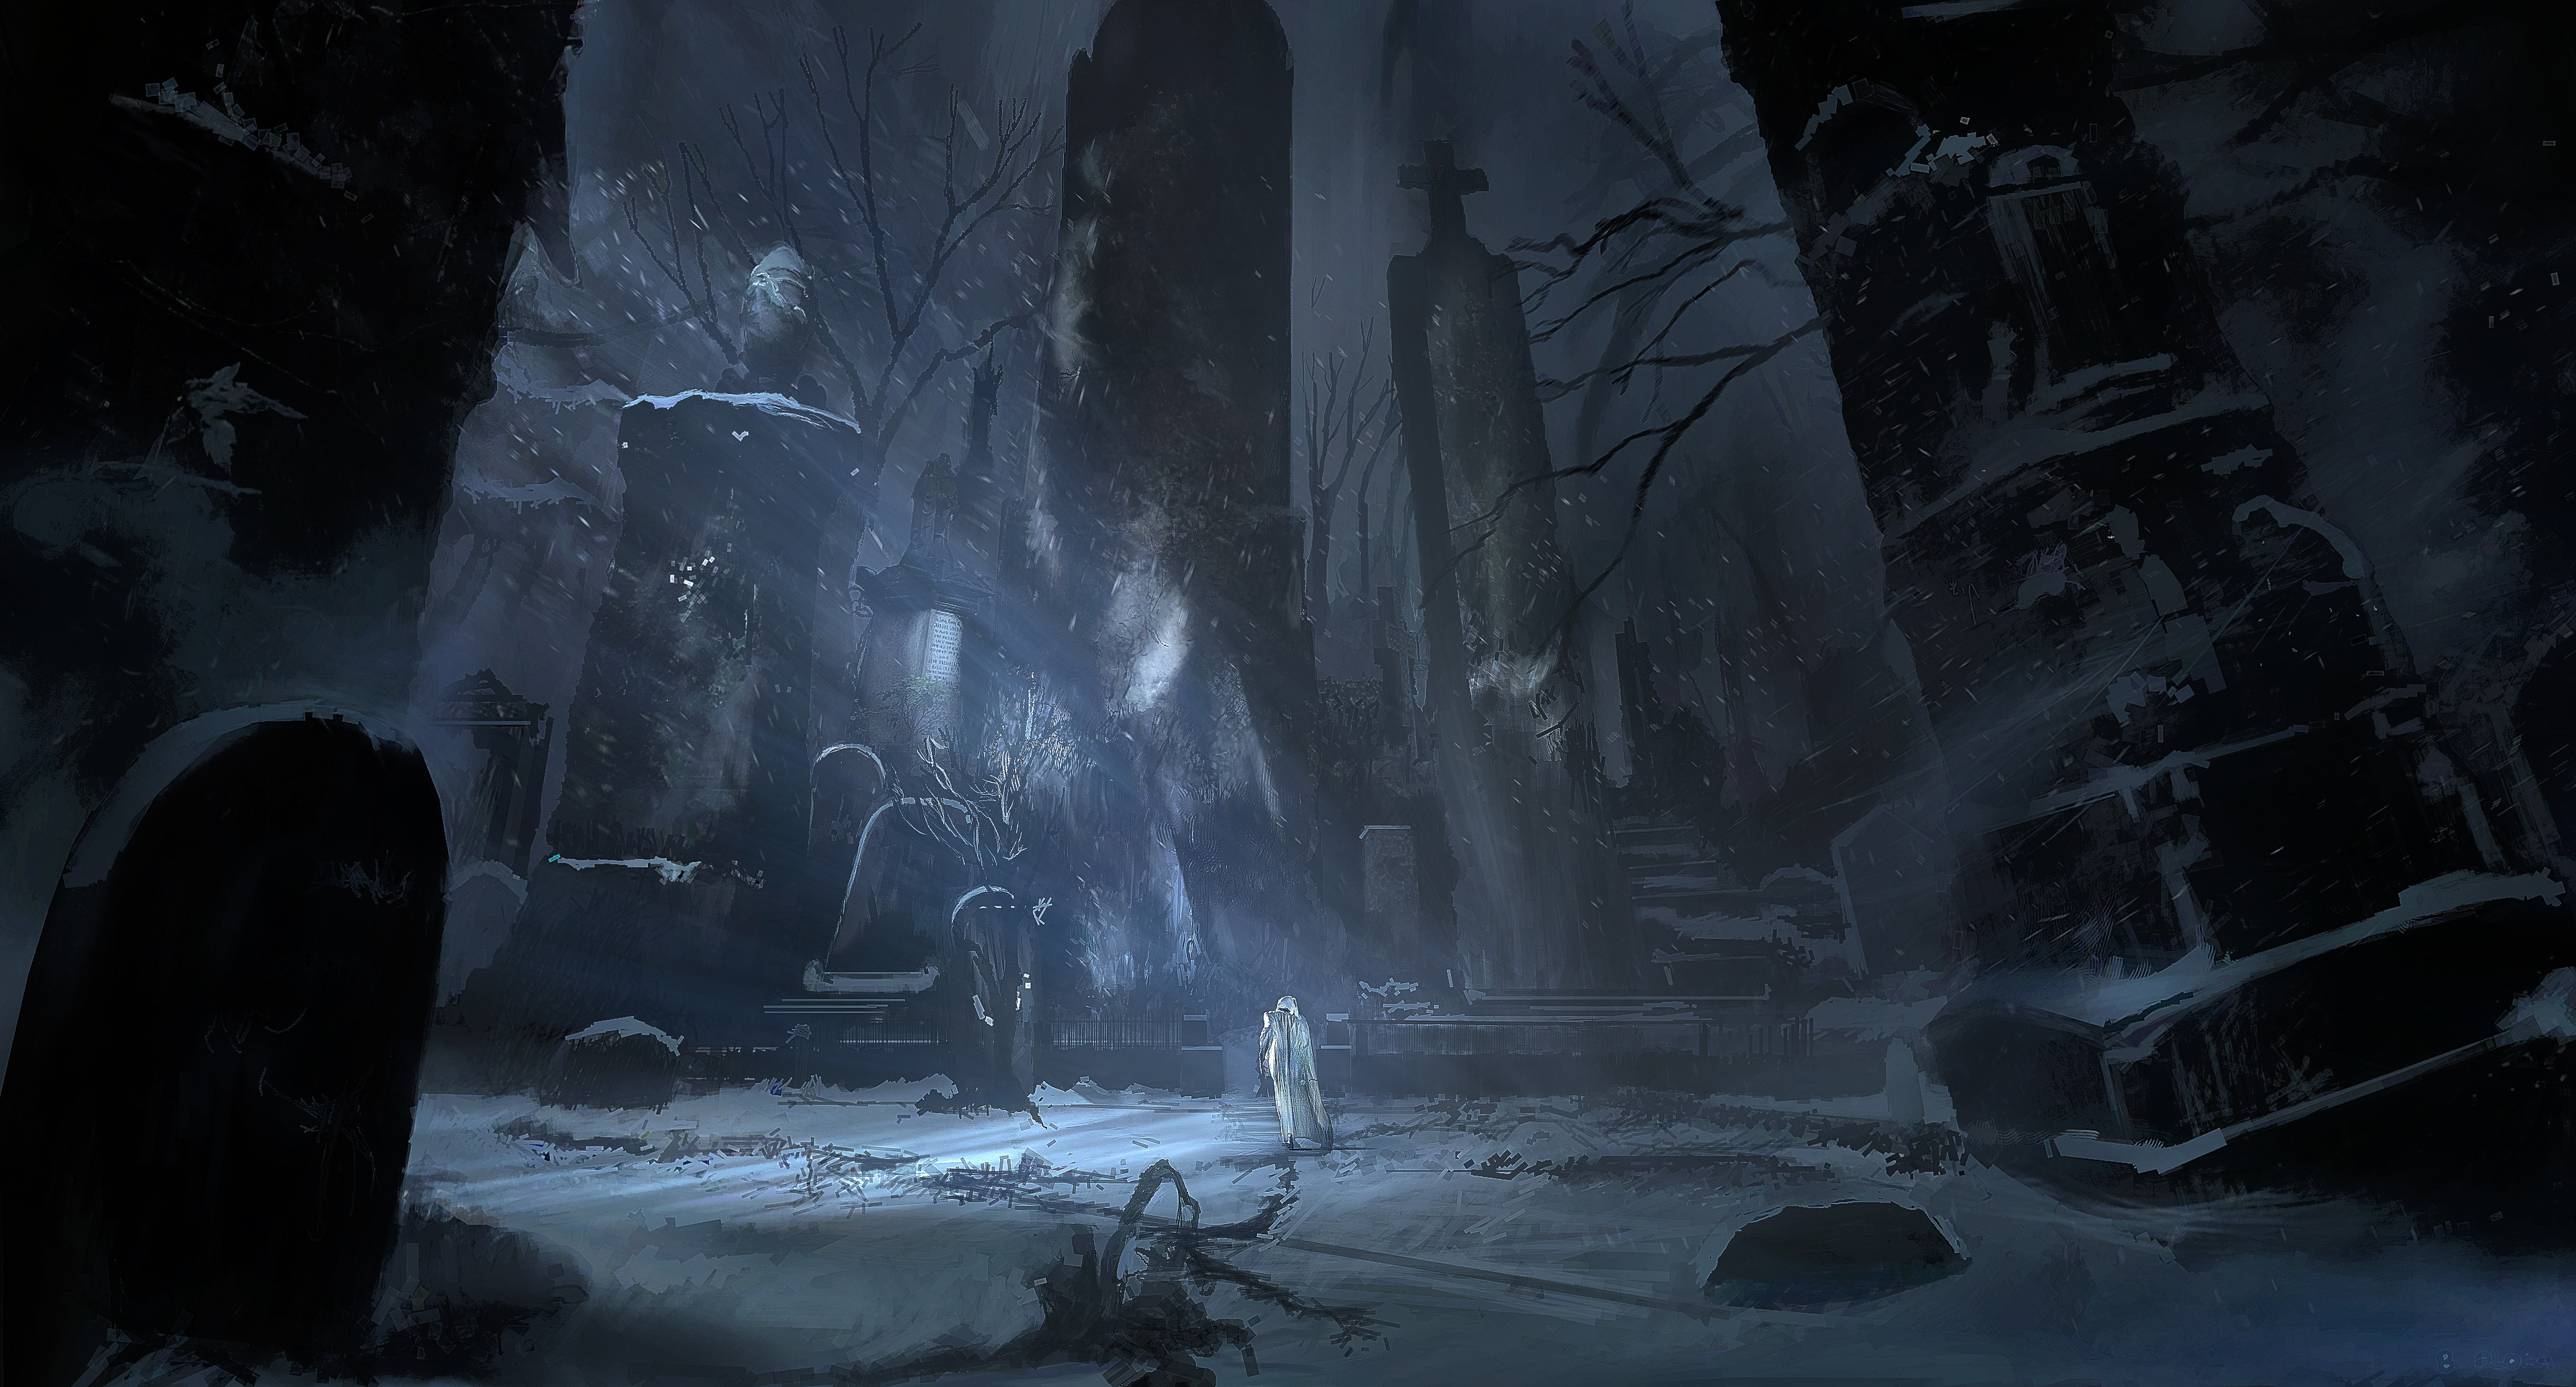 Graveyard concept painting for A Christmas Carol